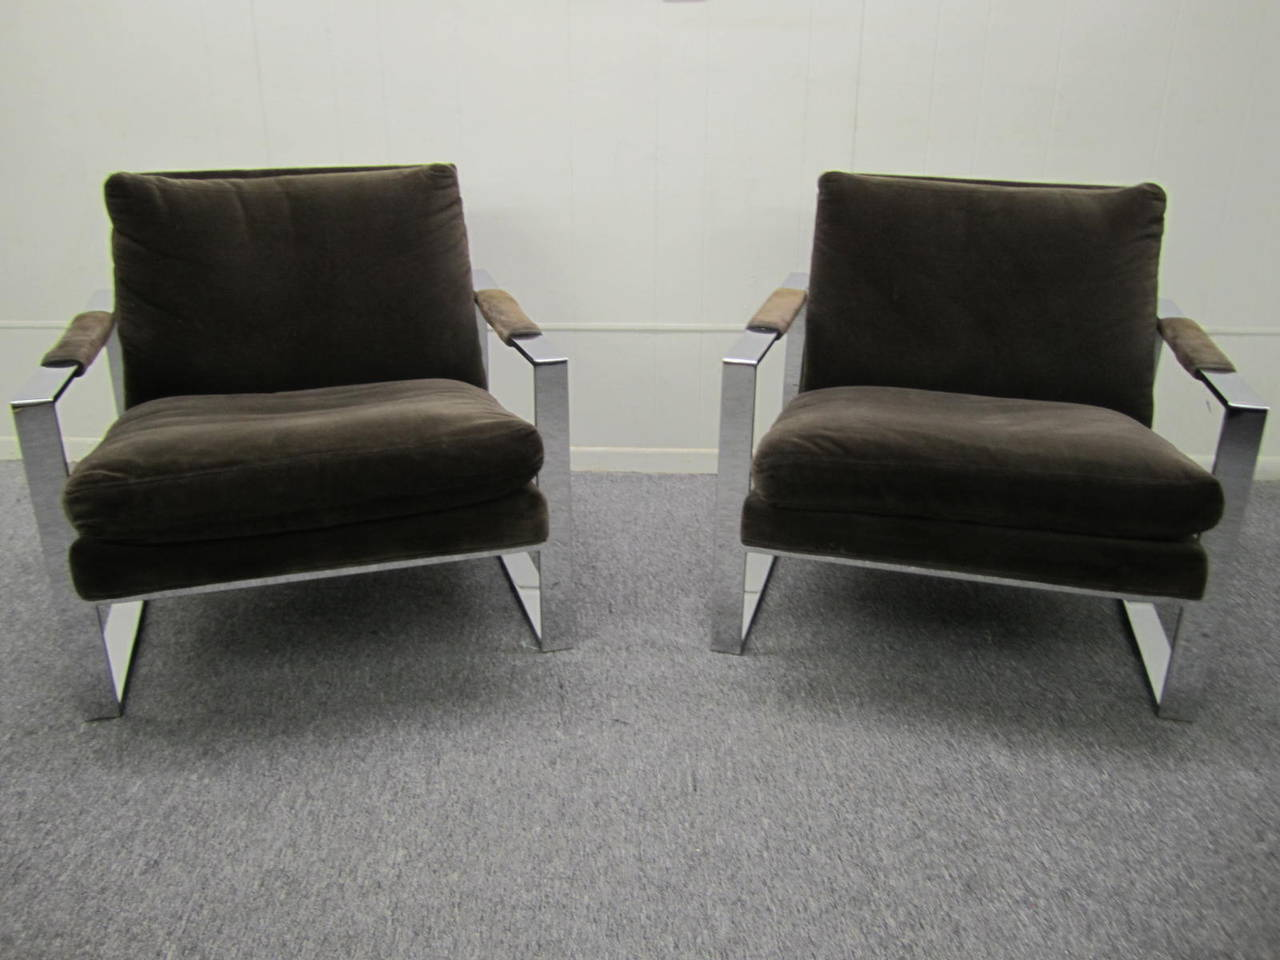 American Fabulous Pair Of Milo Baughman Chrome Cube Lounge Chairs,  Mid Century Modern For